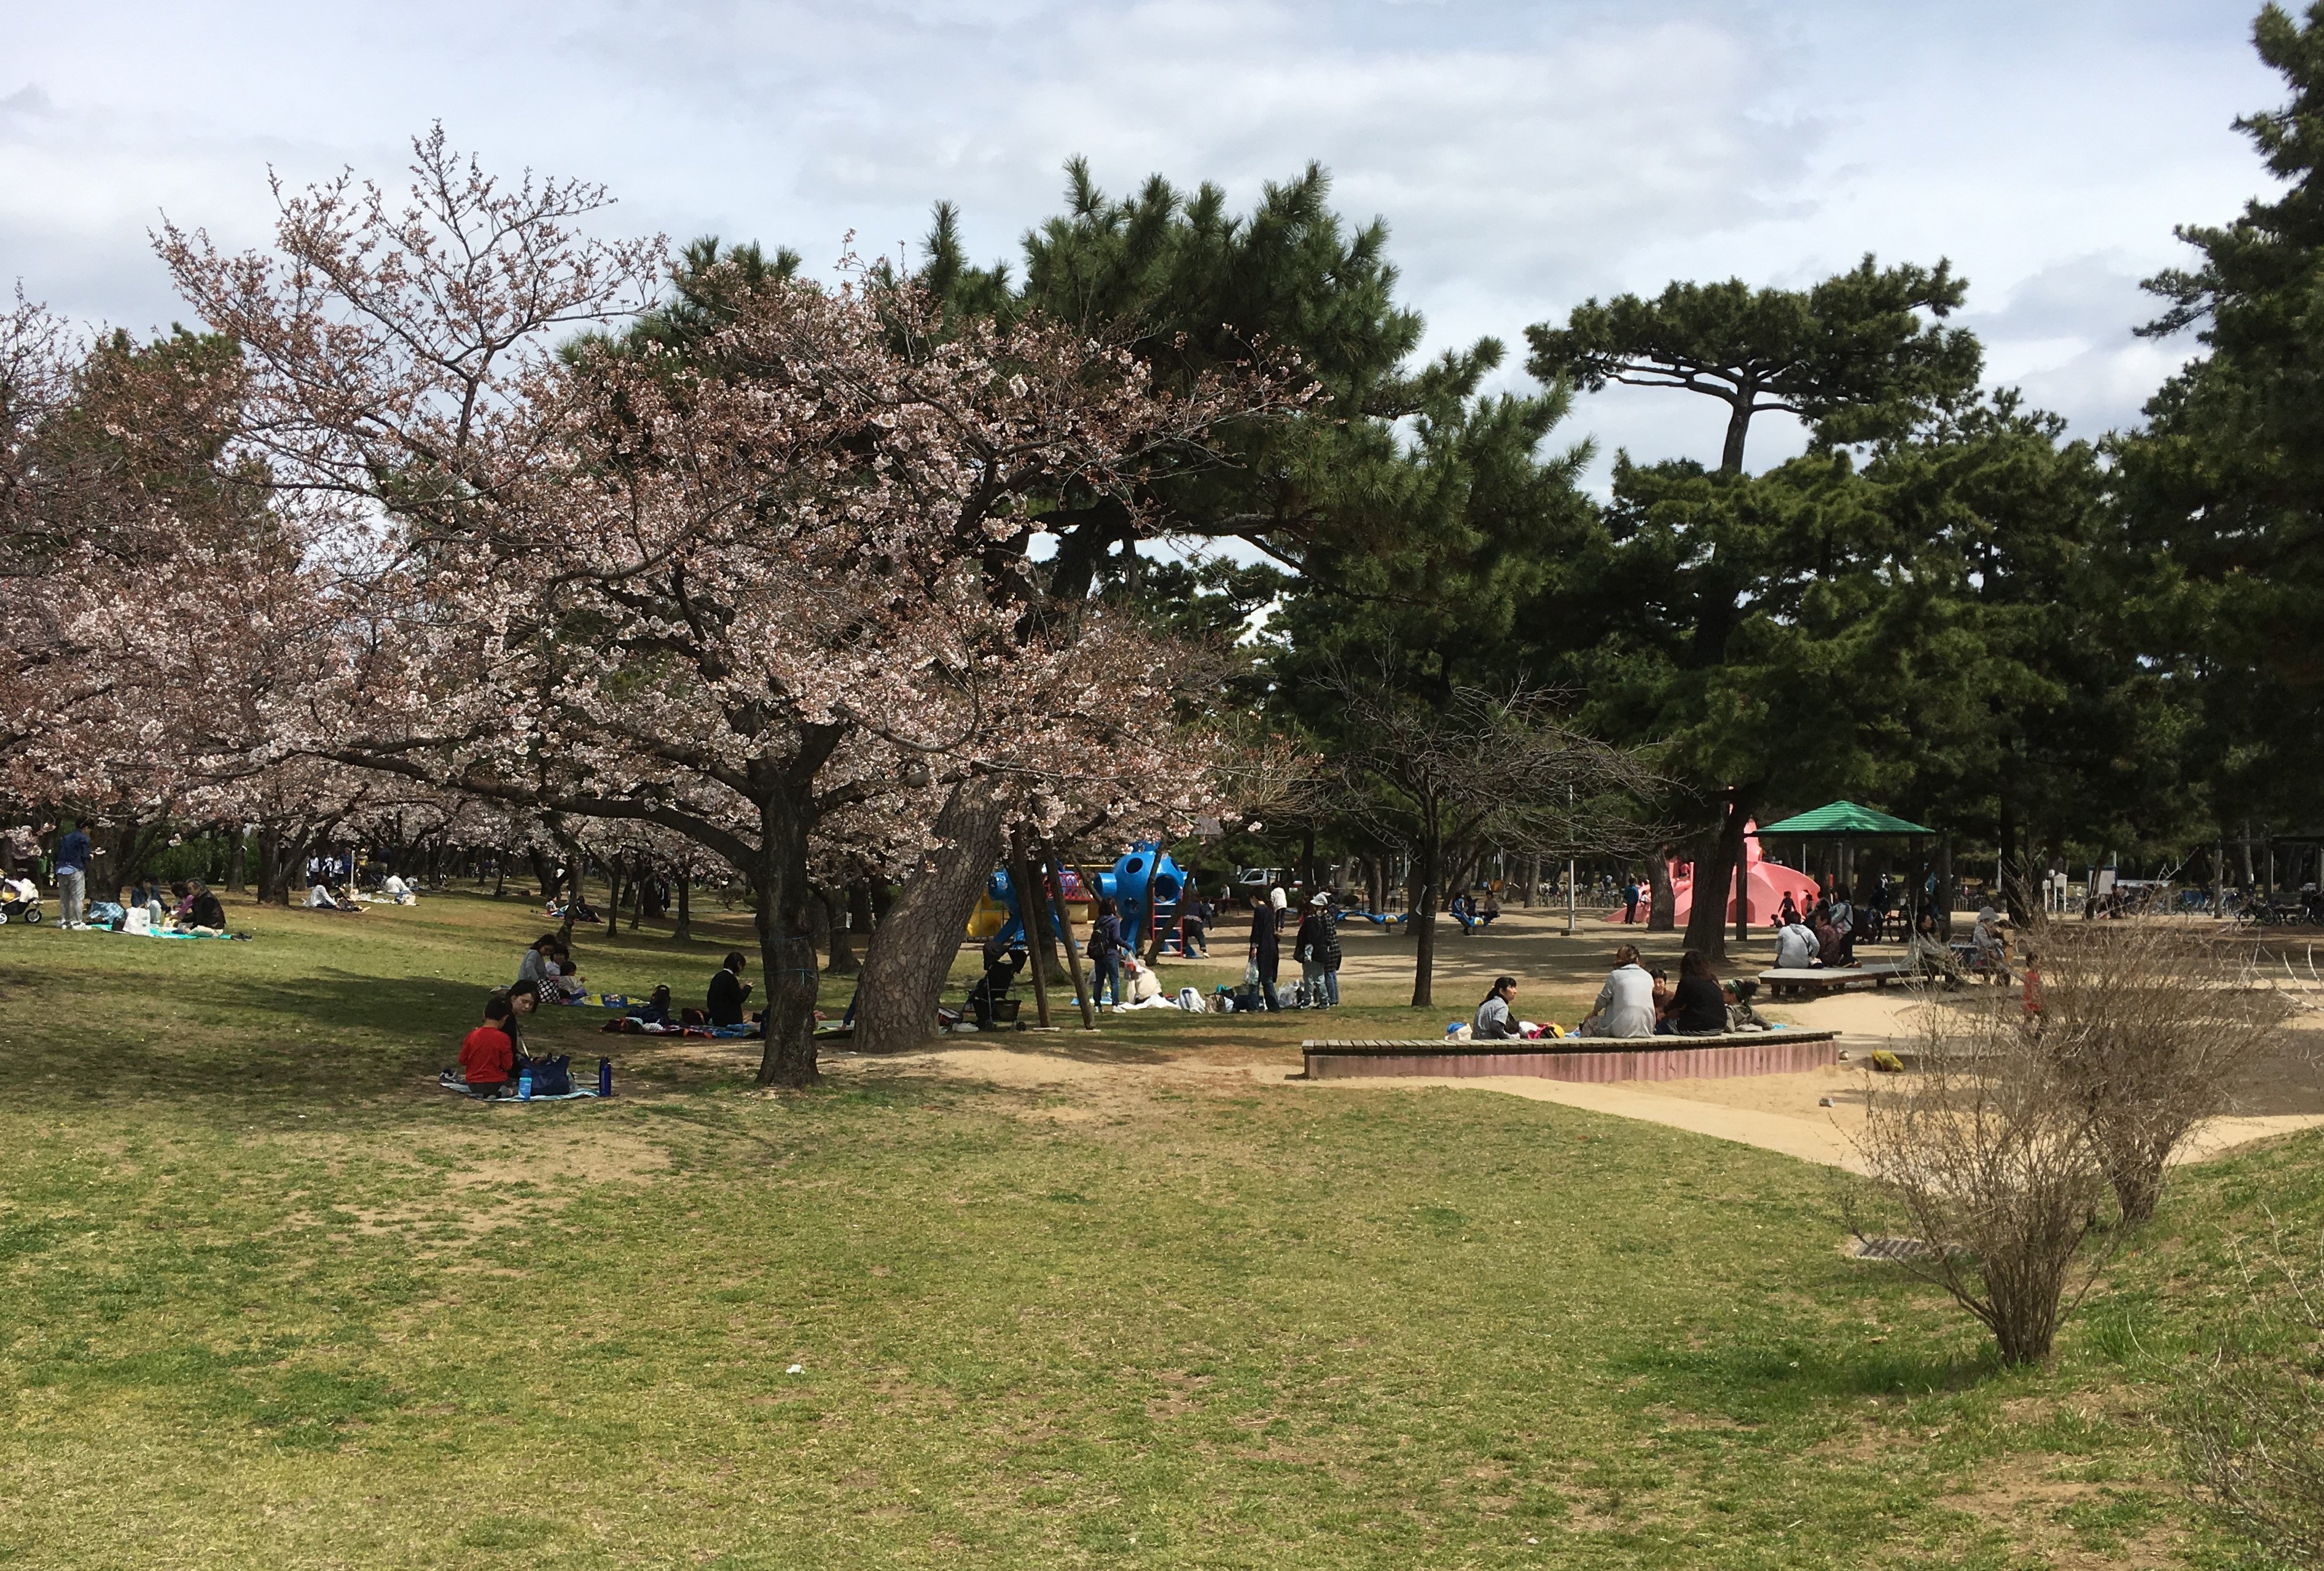 people picnicking under the cherry blossom trees at Hamadera Park